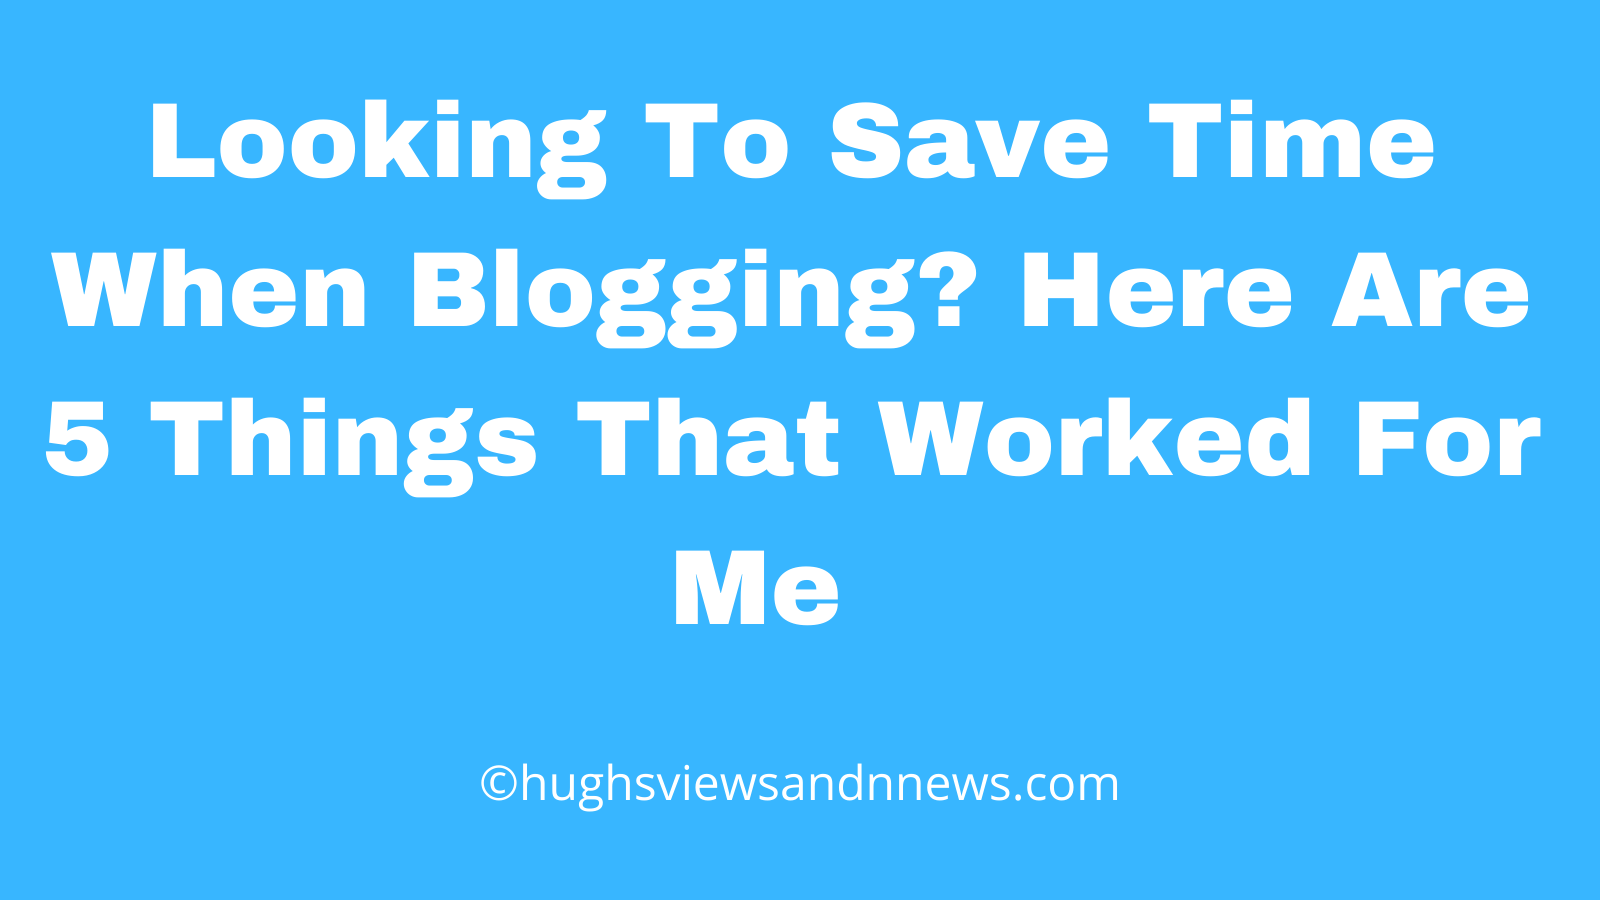 Blog post banner for the blog post 'Looking To Save Time When Blogging? Here Are 5 Things That Worked For Me.'